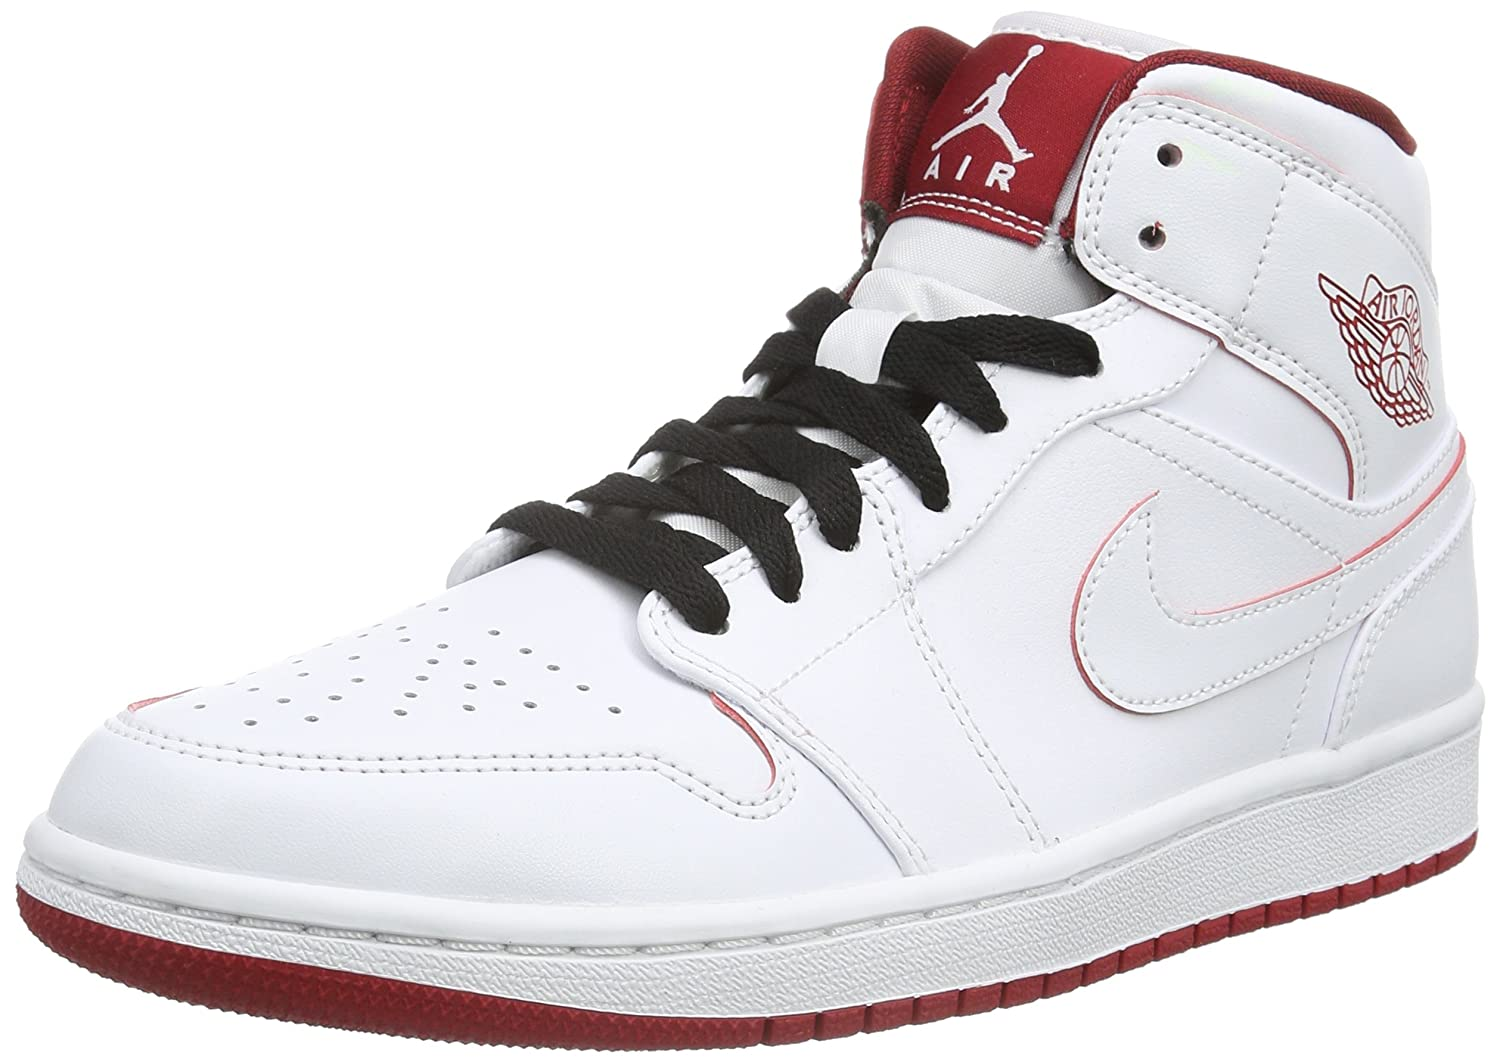 Amazon.com: Nike Mens Air Jordan 1 Mid White/Black/Gym Red Basketball Shoe - 13 D(M) US: Clothing